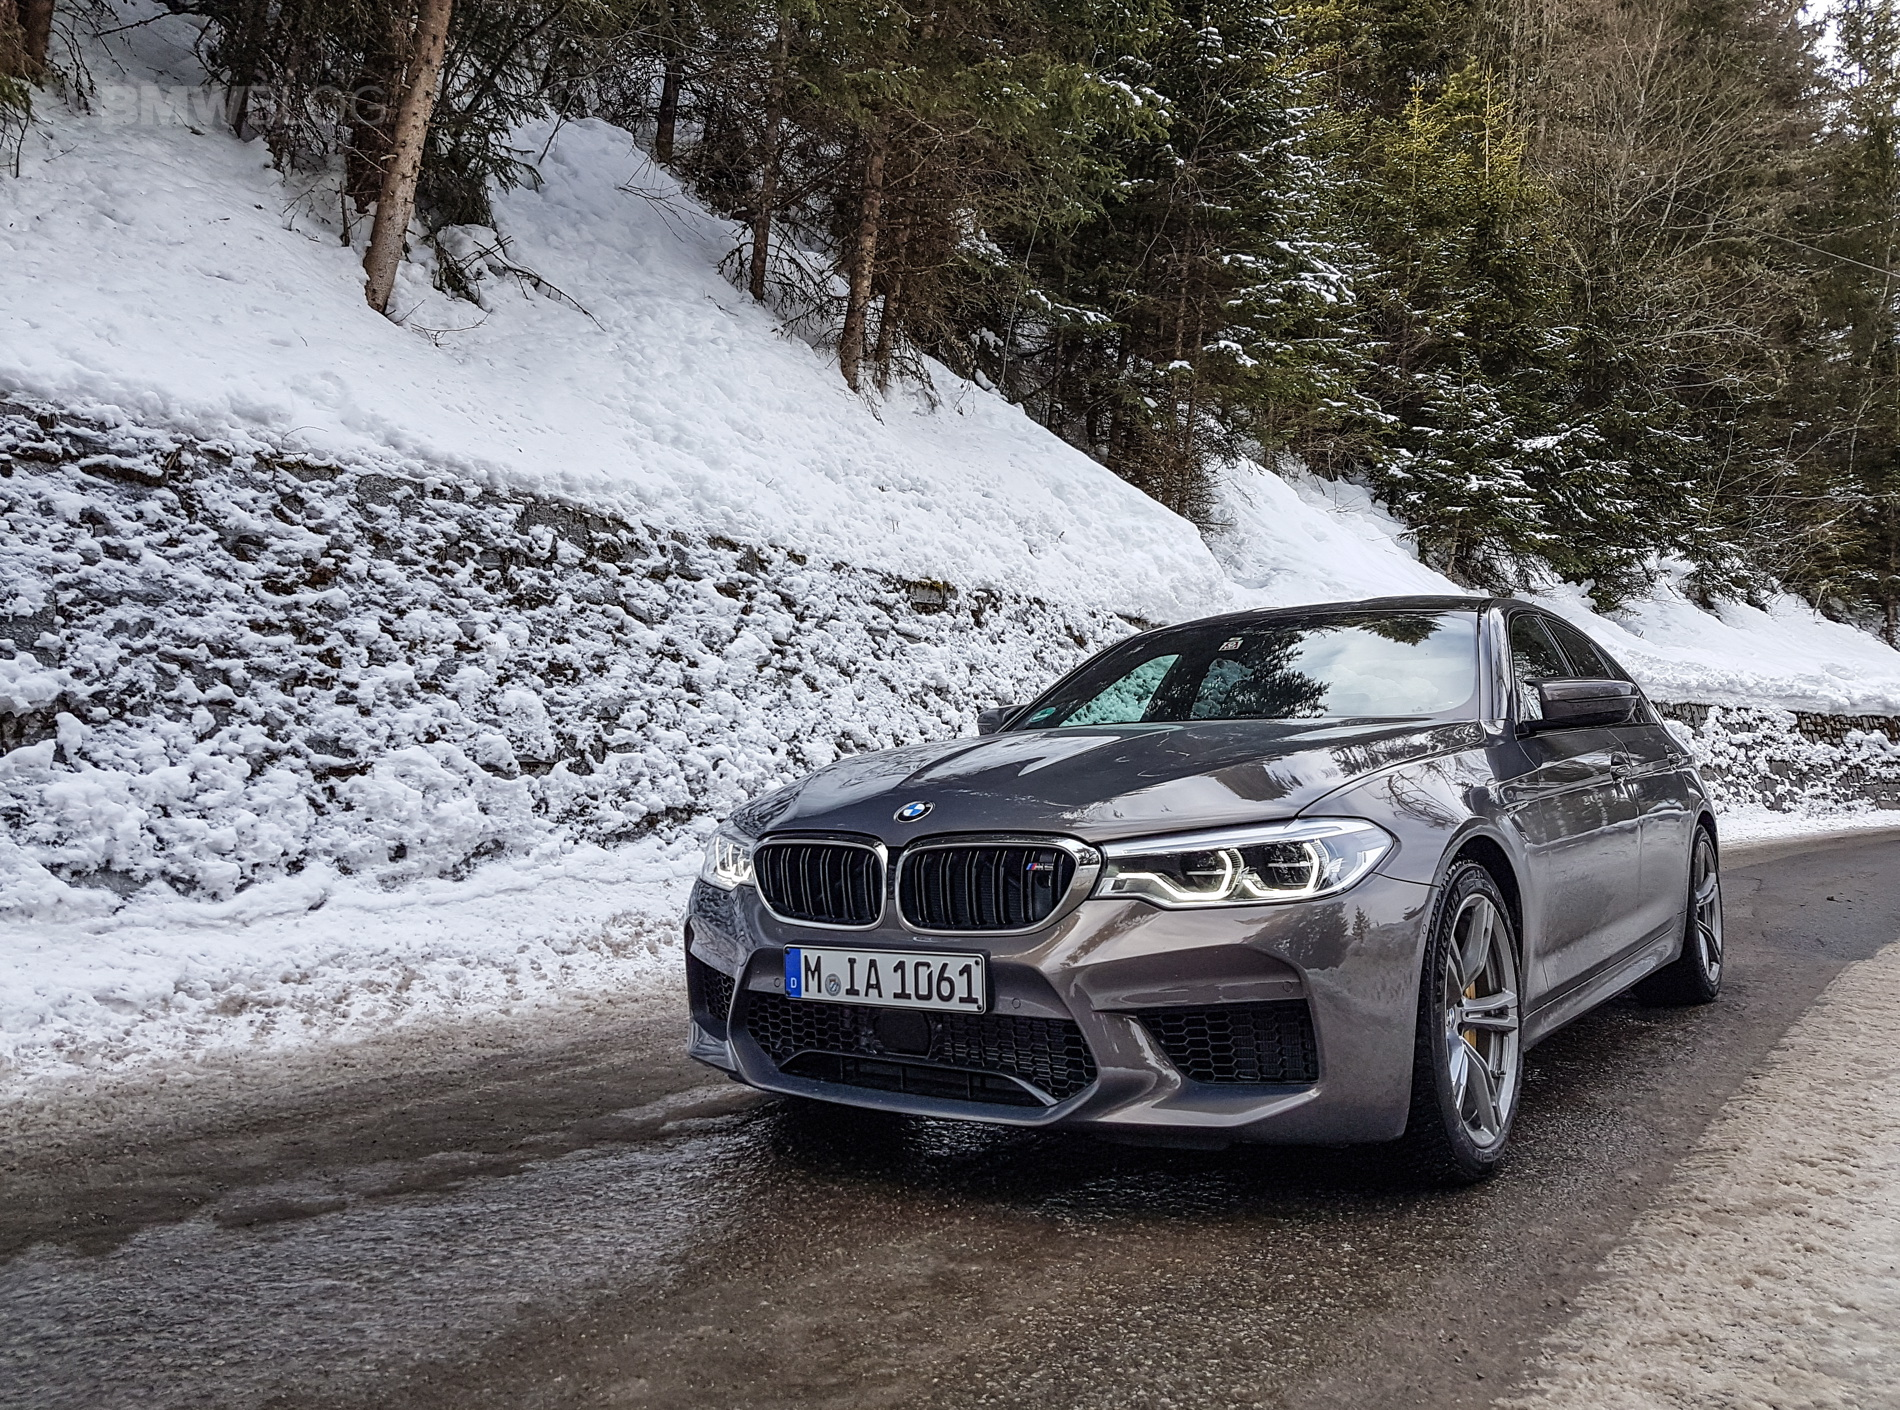 The new BMW M5 in Champagne Quartz goes into the Alps